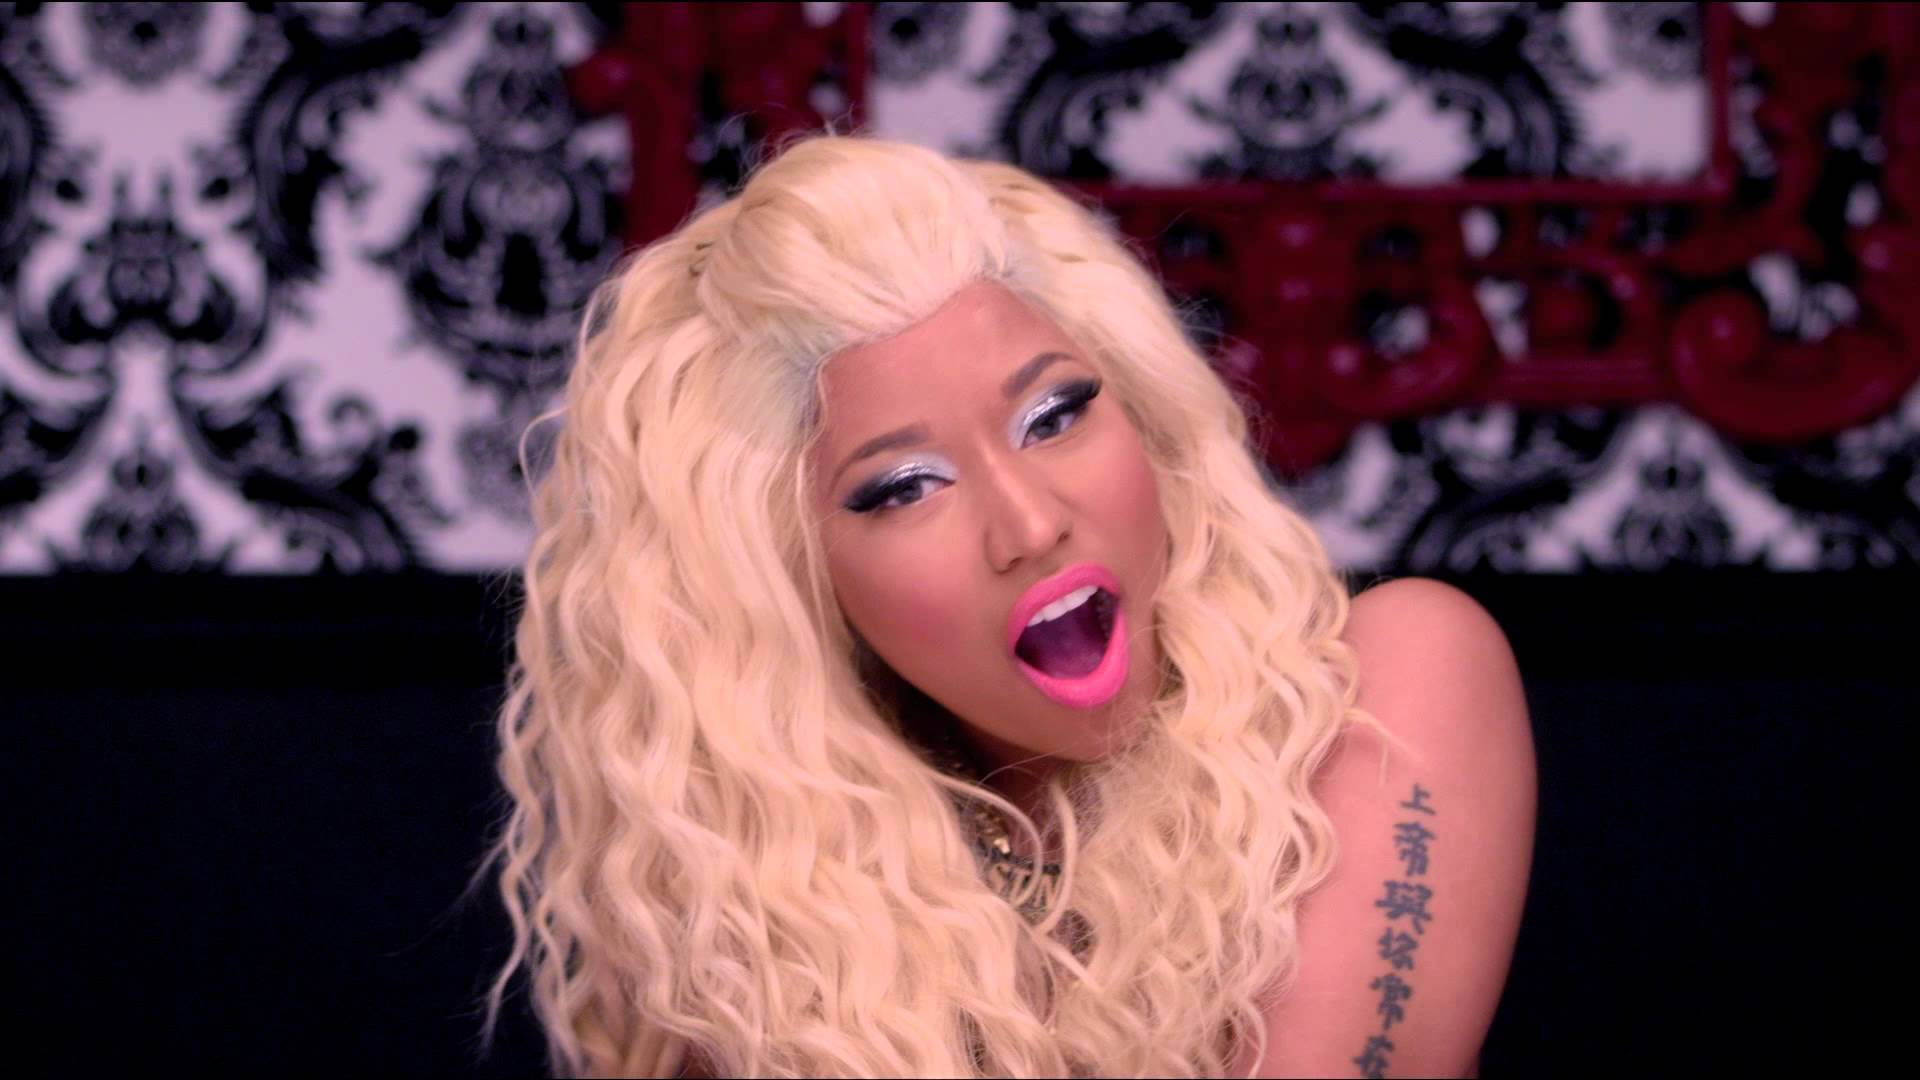 Nicki Minaj HD Desktop Wallpaper Wallpaper